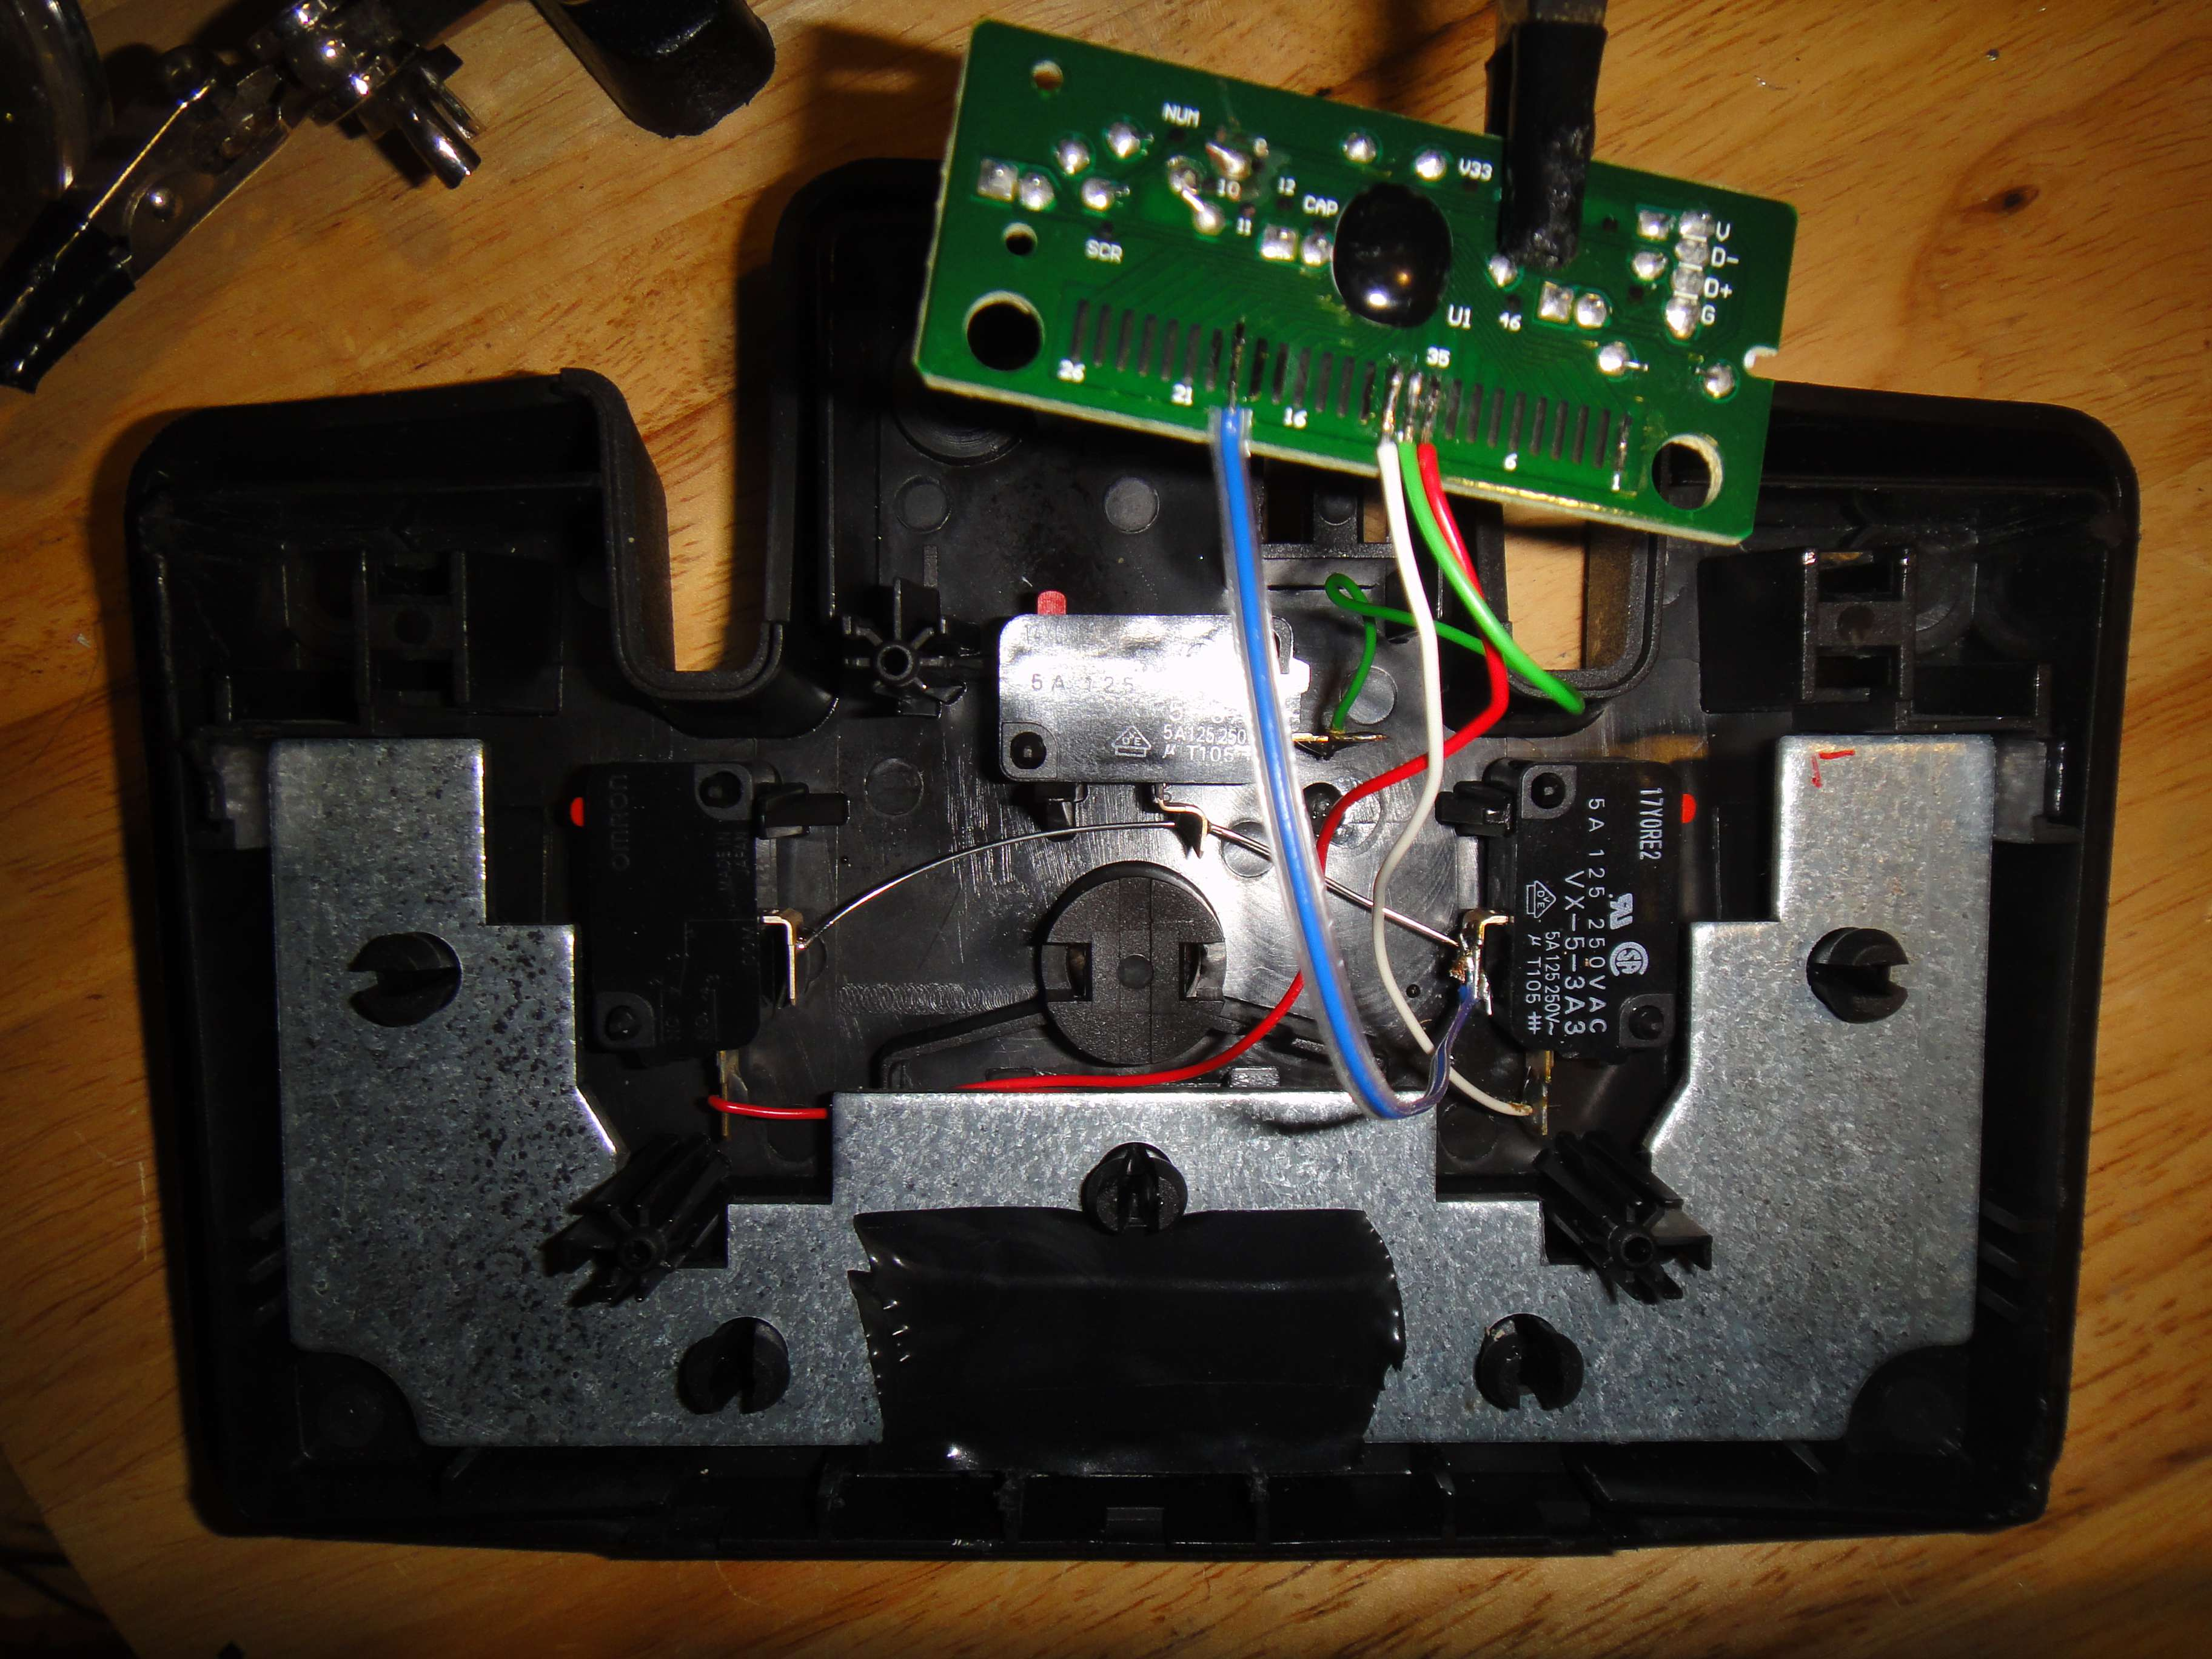 Phillips LFH-0210 dictation pedal turned into custom HID input device (HP KU-0316 keyboard mod)